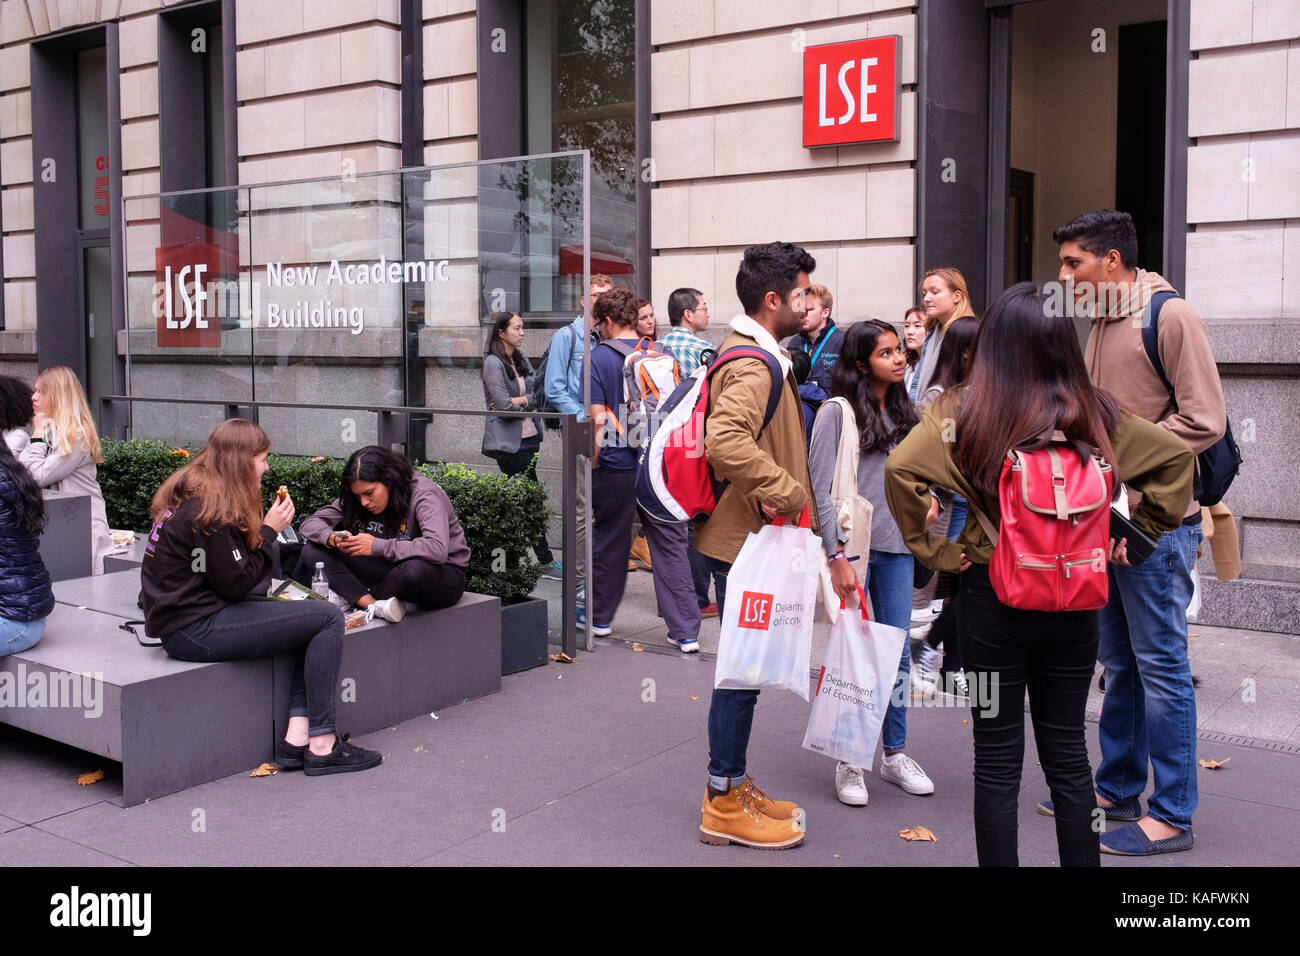 Students attending the London School of Economics and Political Science outside the university's New Academic - Stock Image